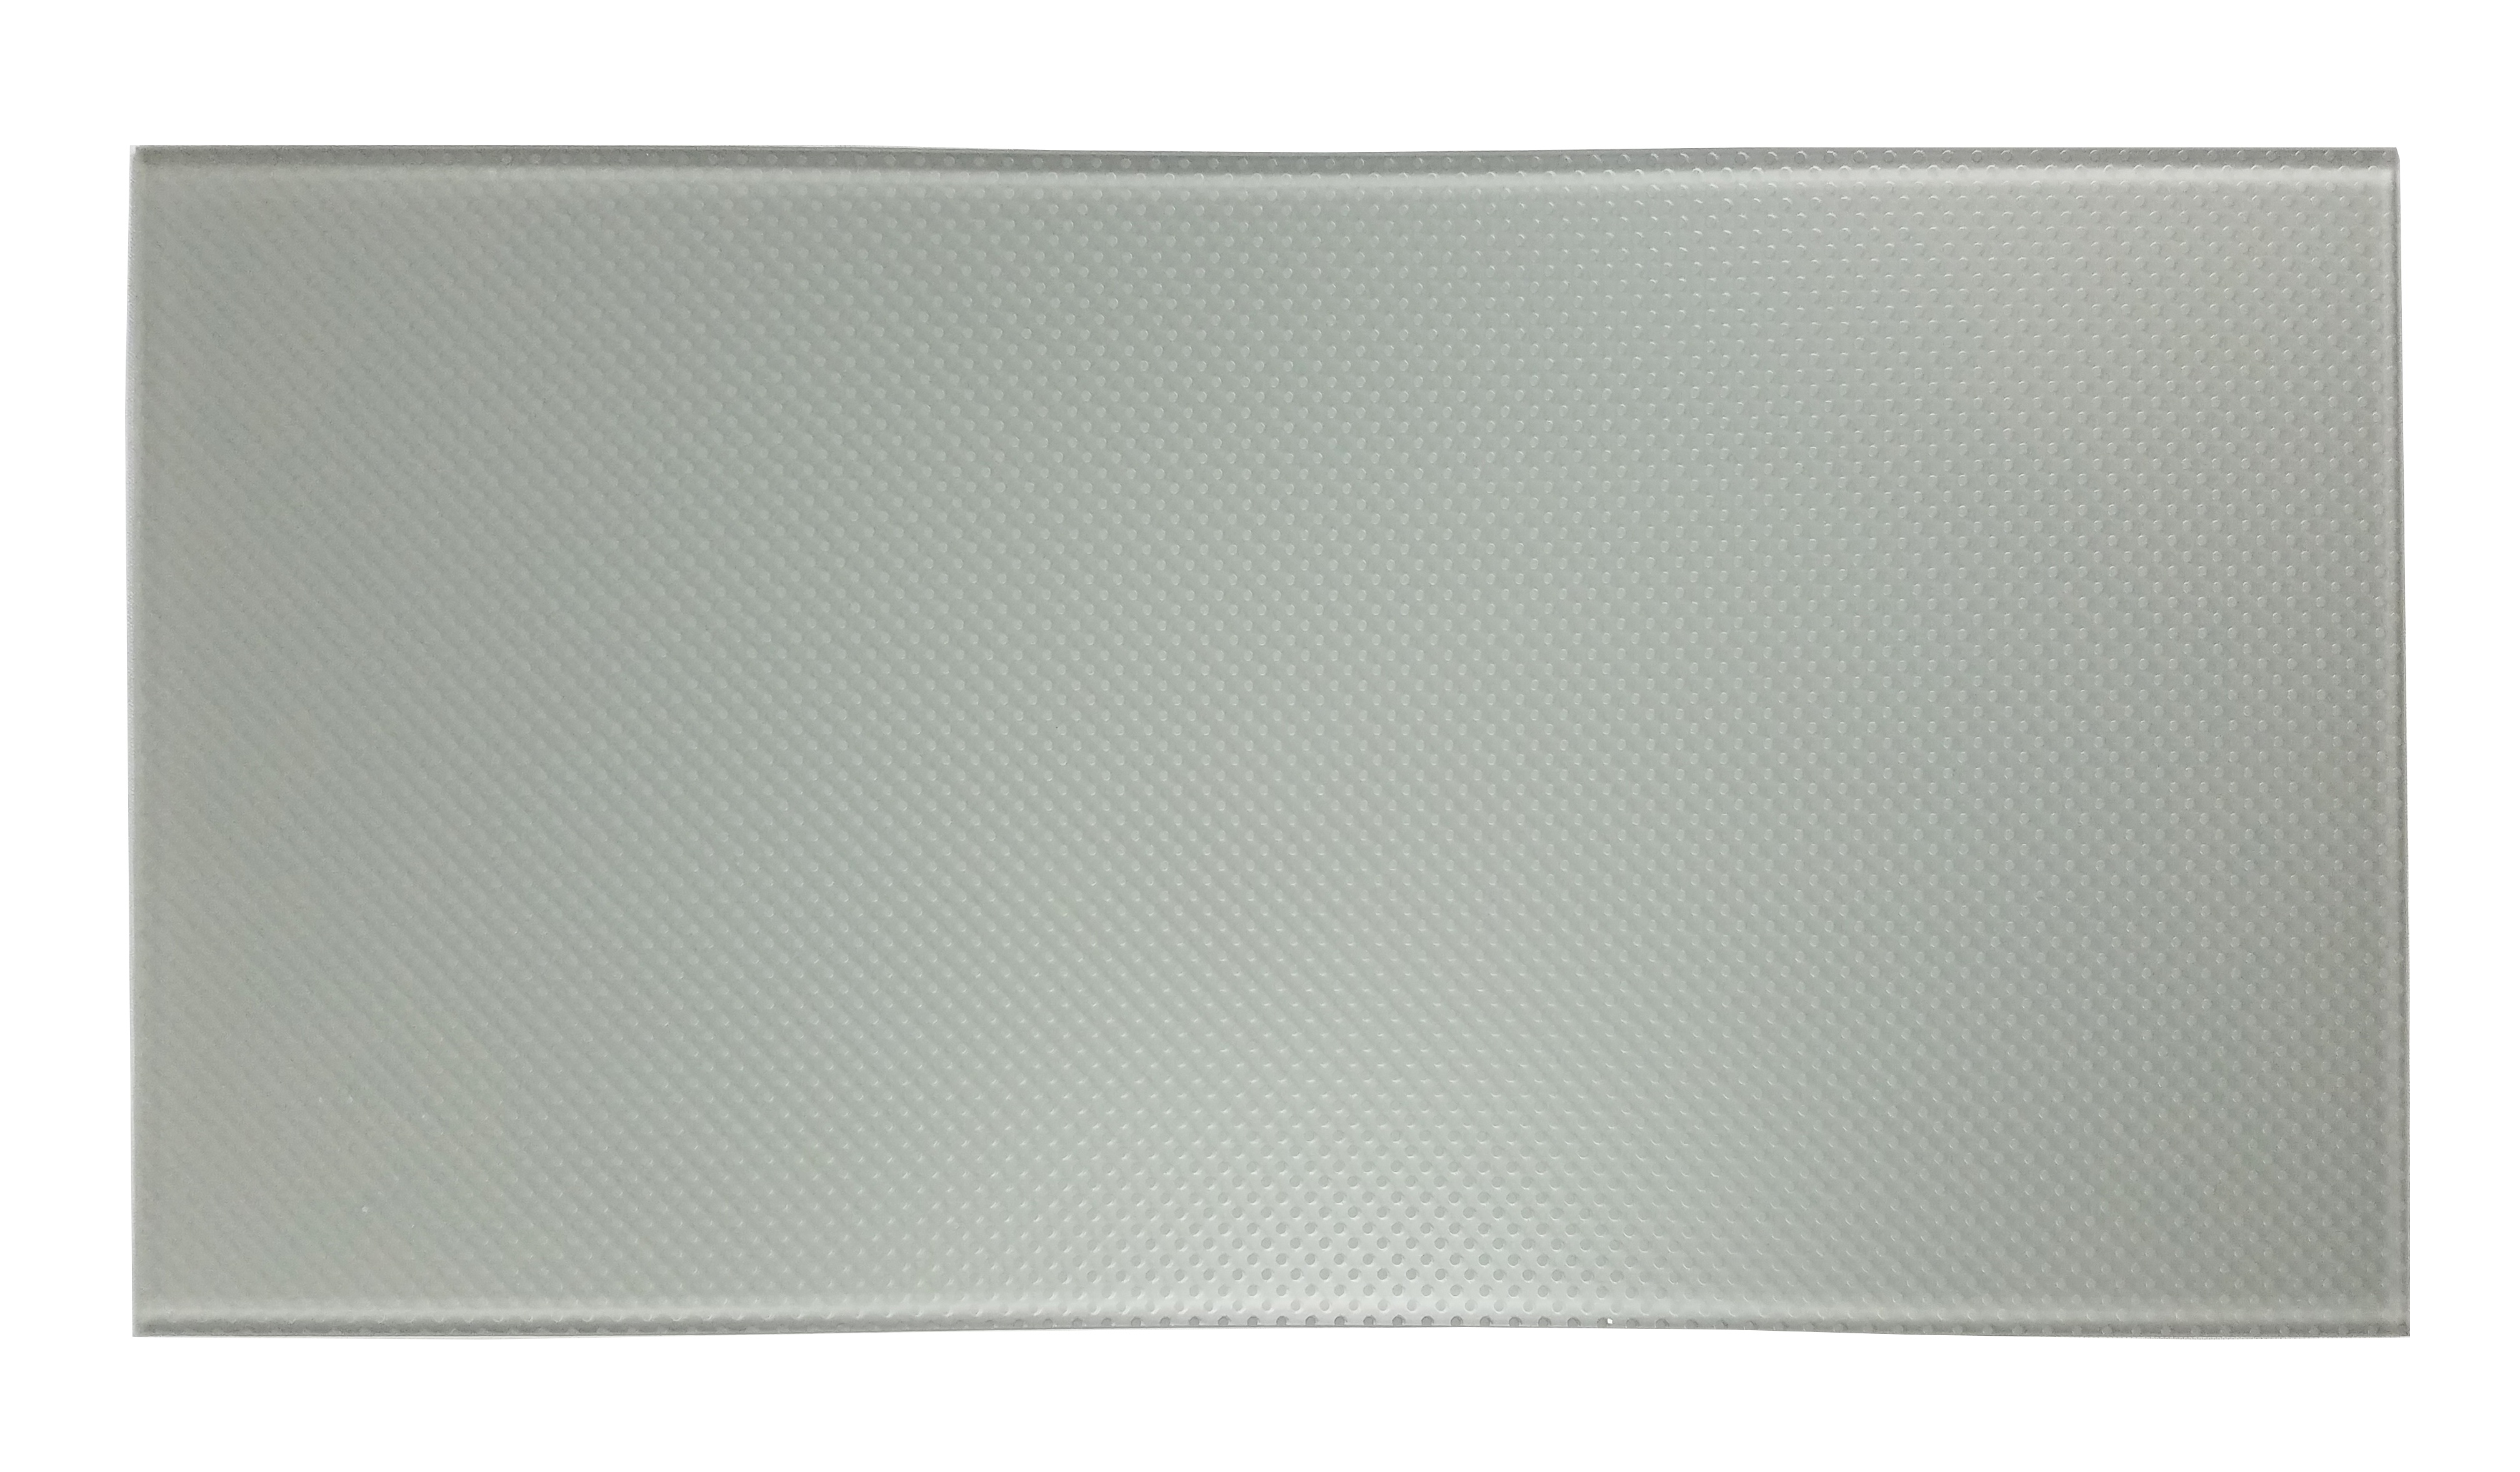 "Particles 12"" x 24"" Slip Resistant Gray Glass Field Backsplash Wall & Floor Tile"